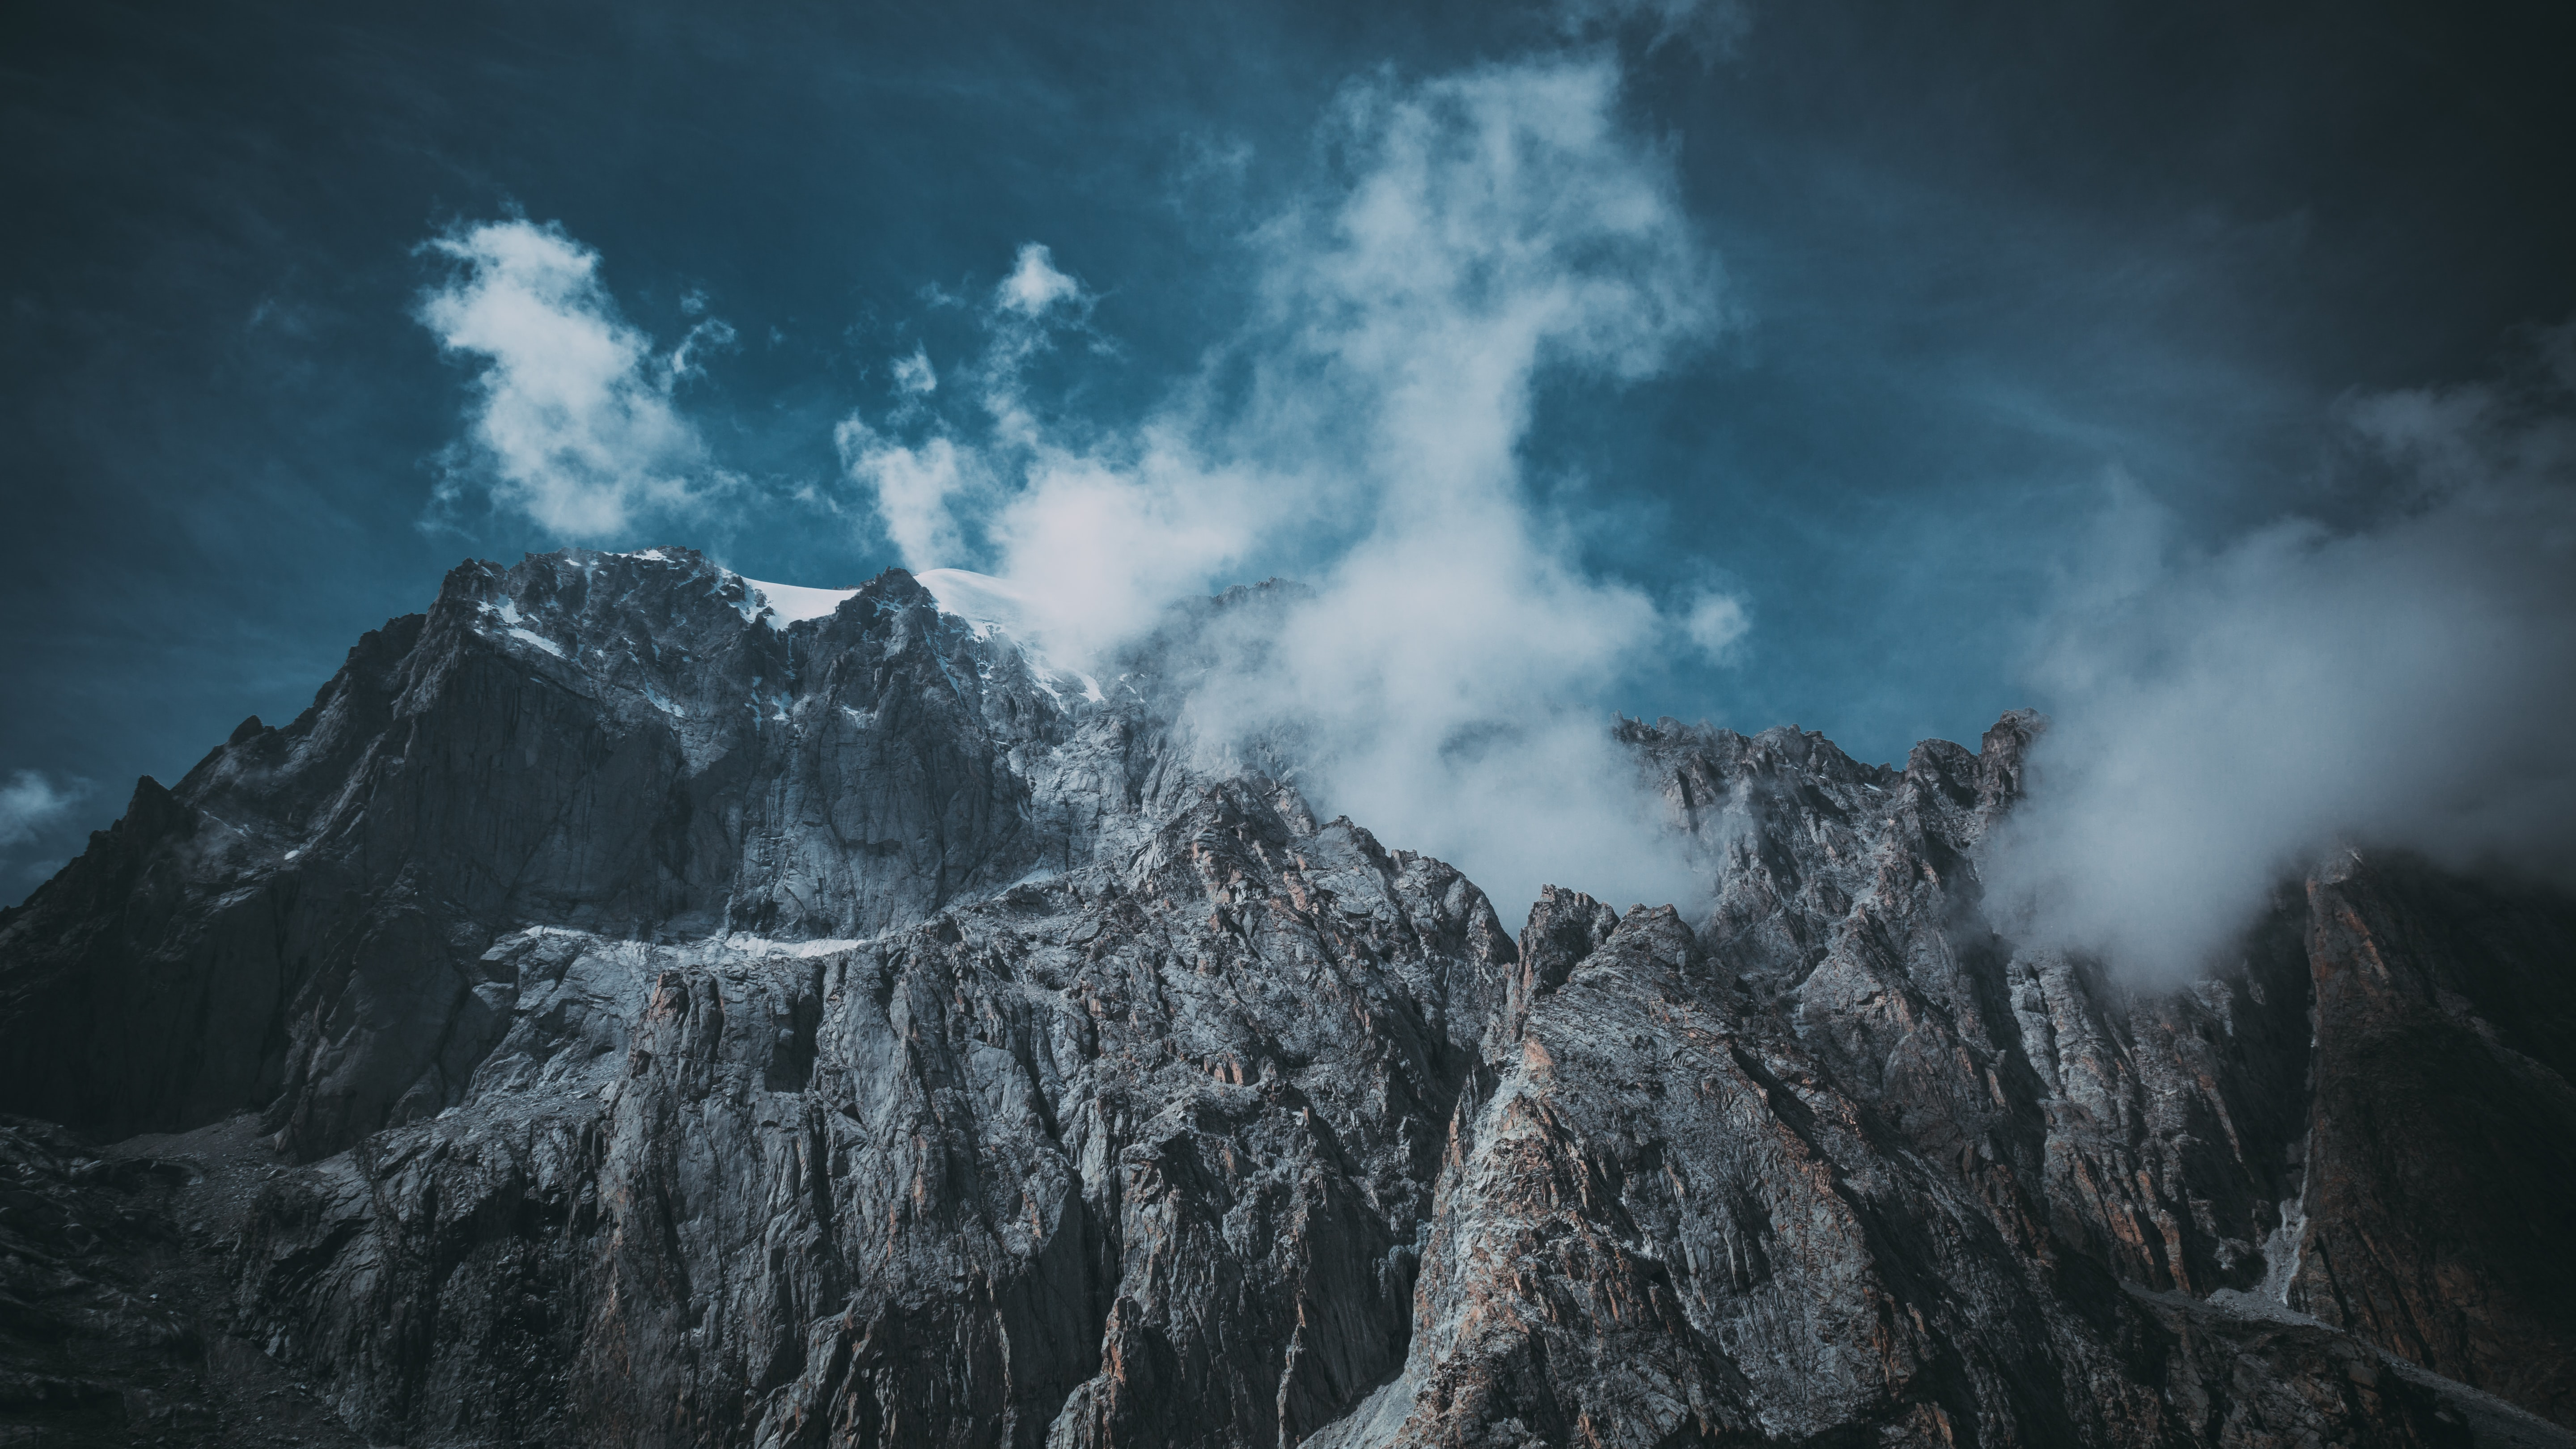 landscape photography of cliff and mountains